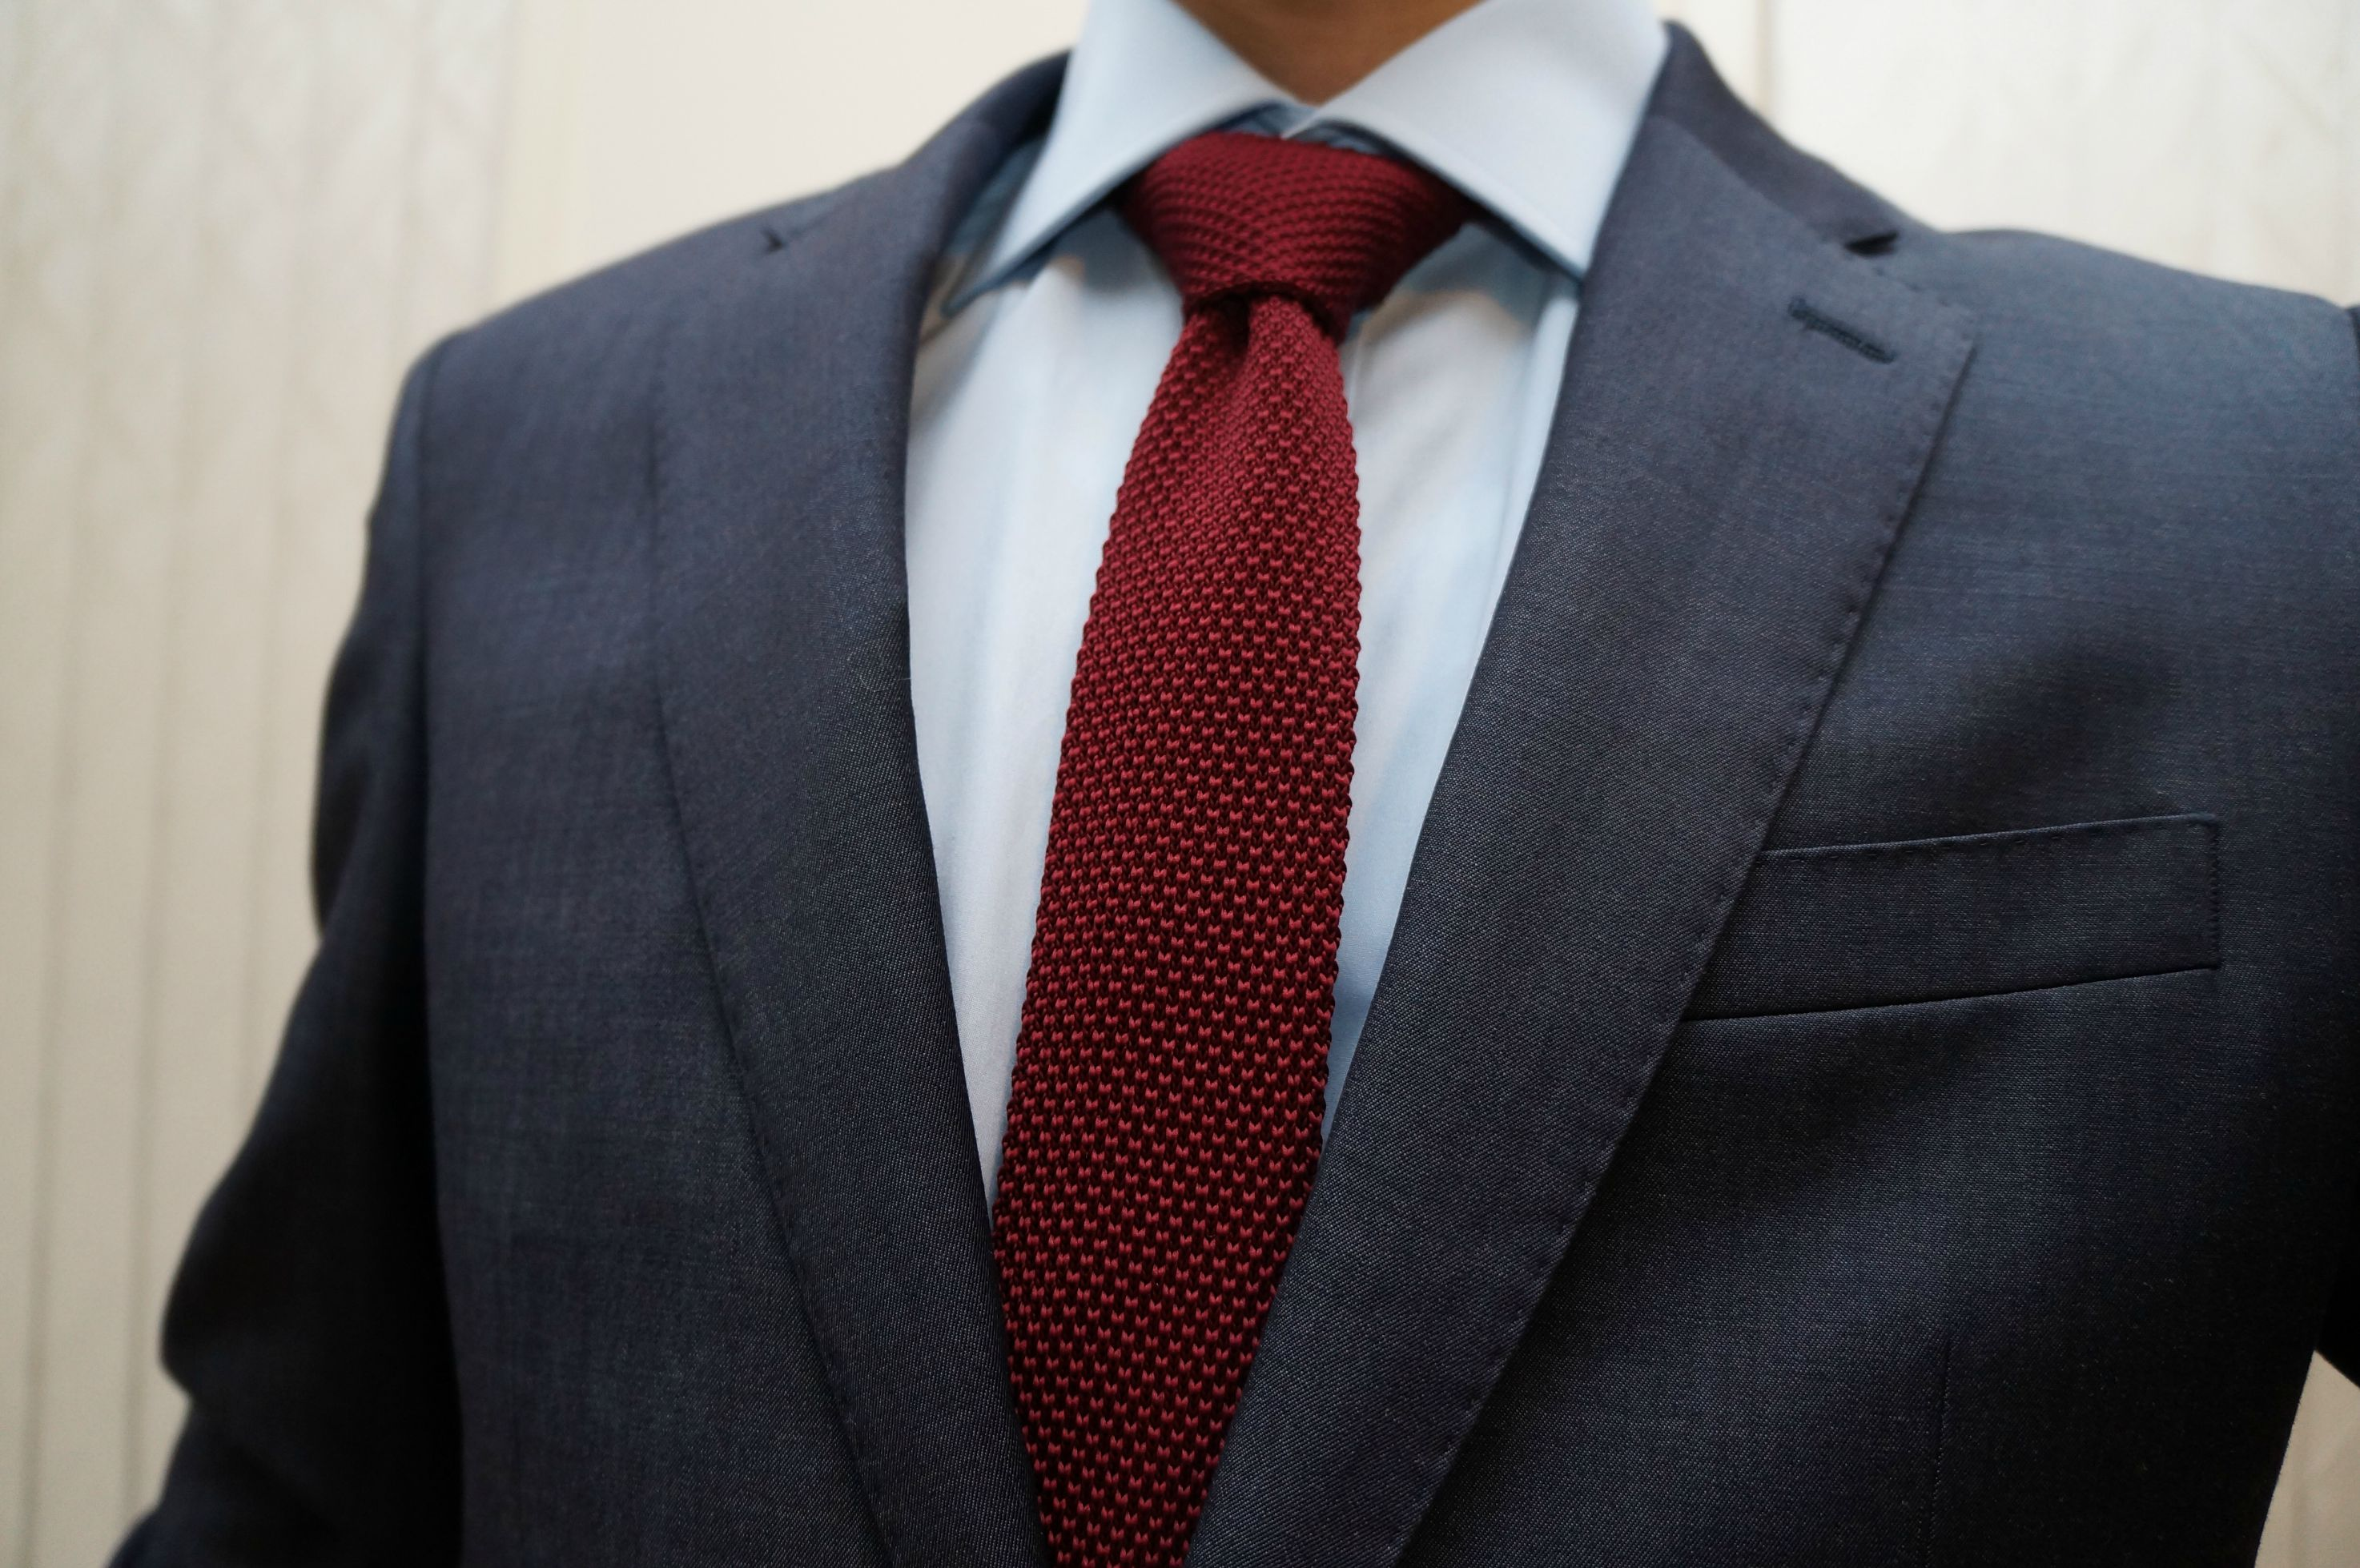 Common suit and ties color combinations suits expert for Black shirt and tie combinations